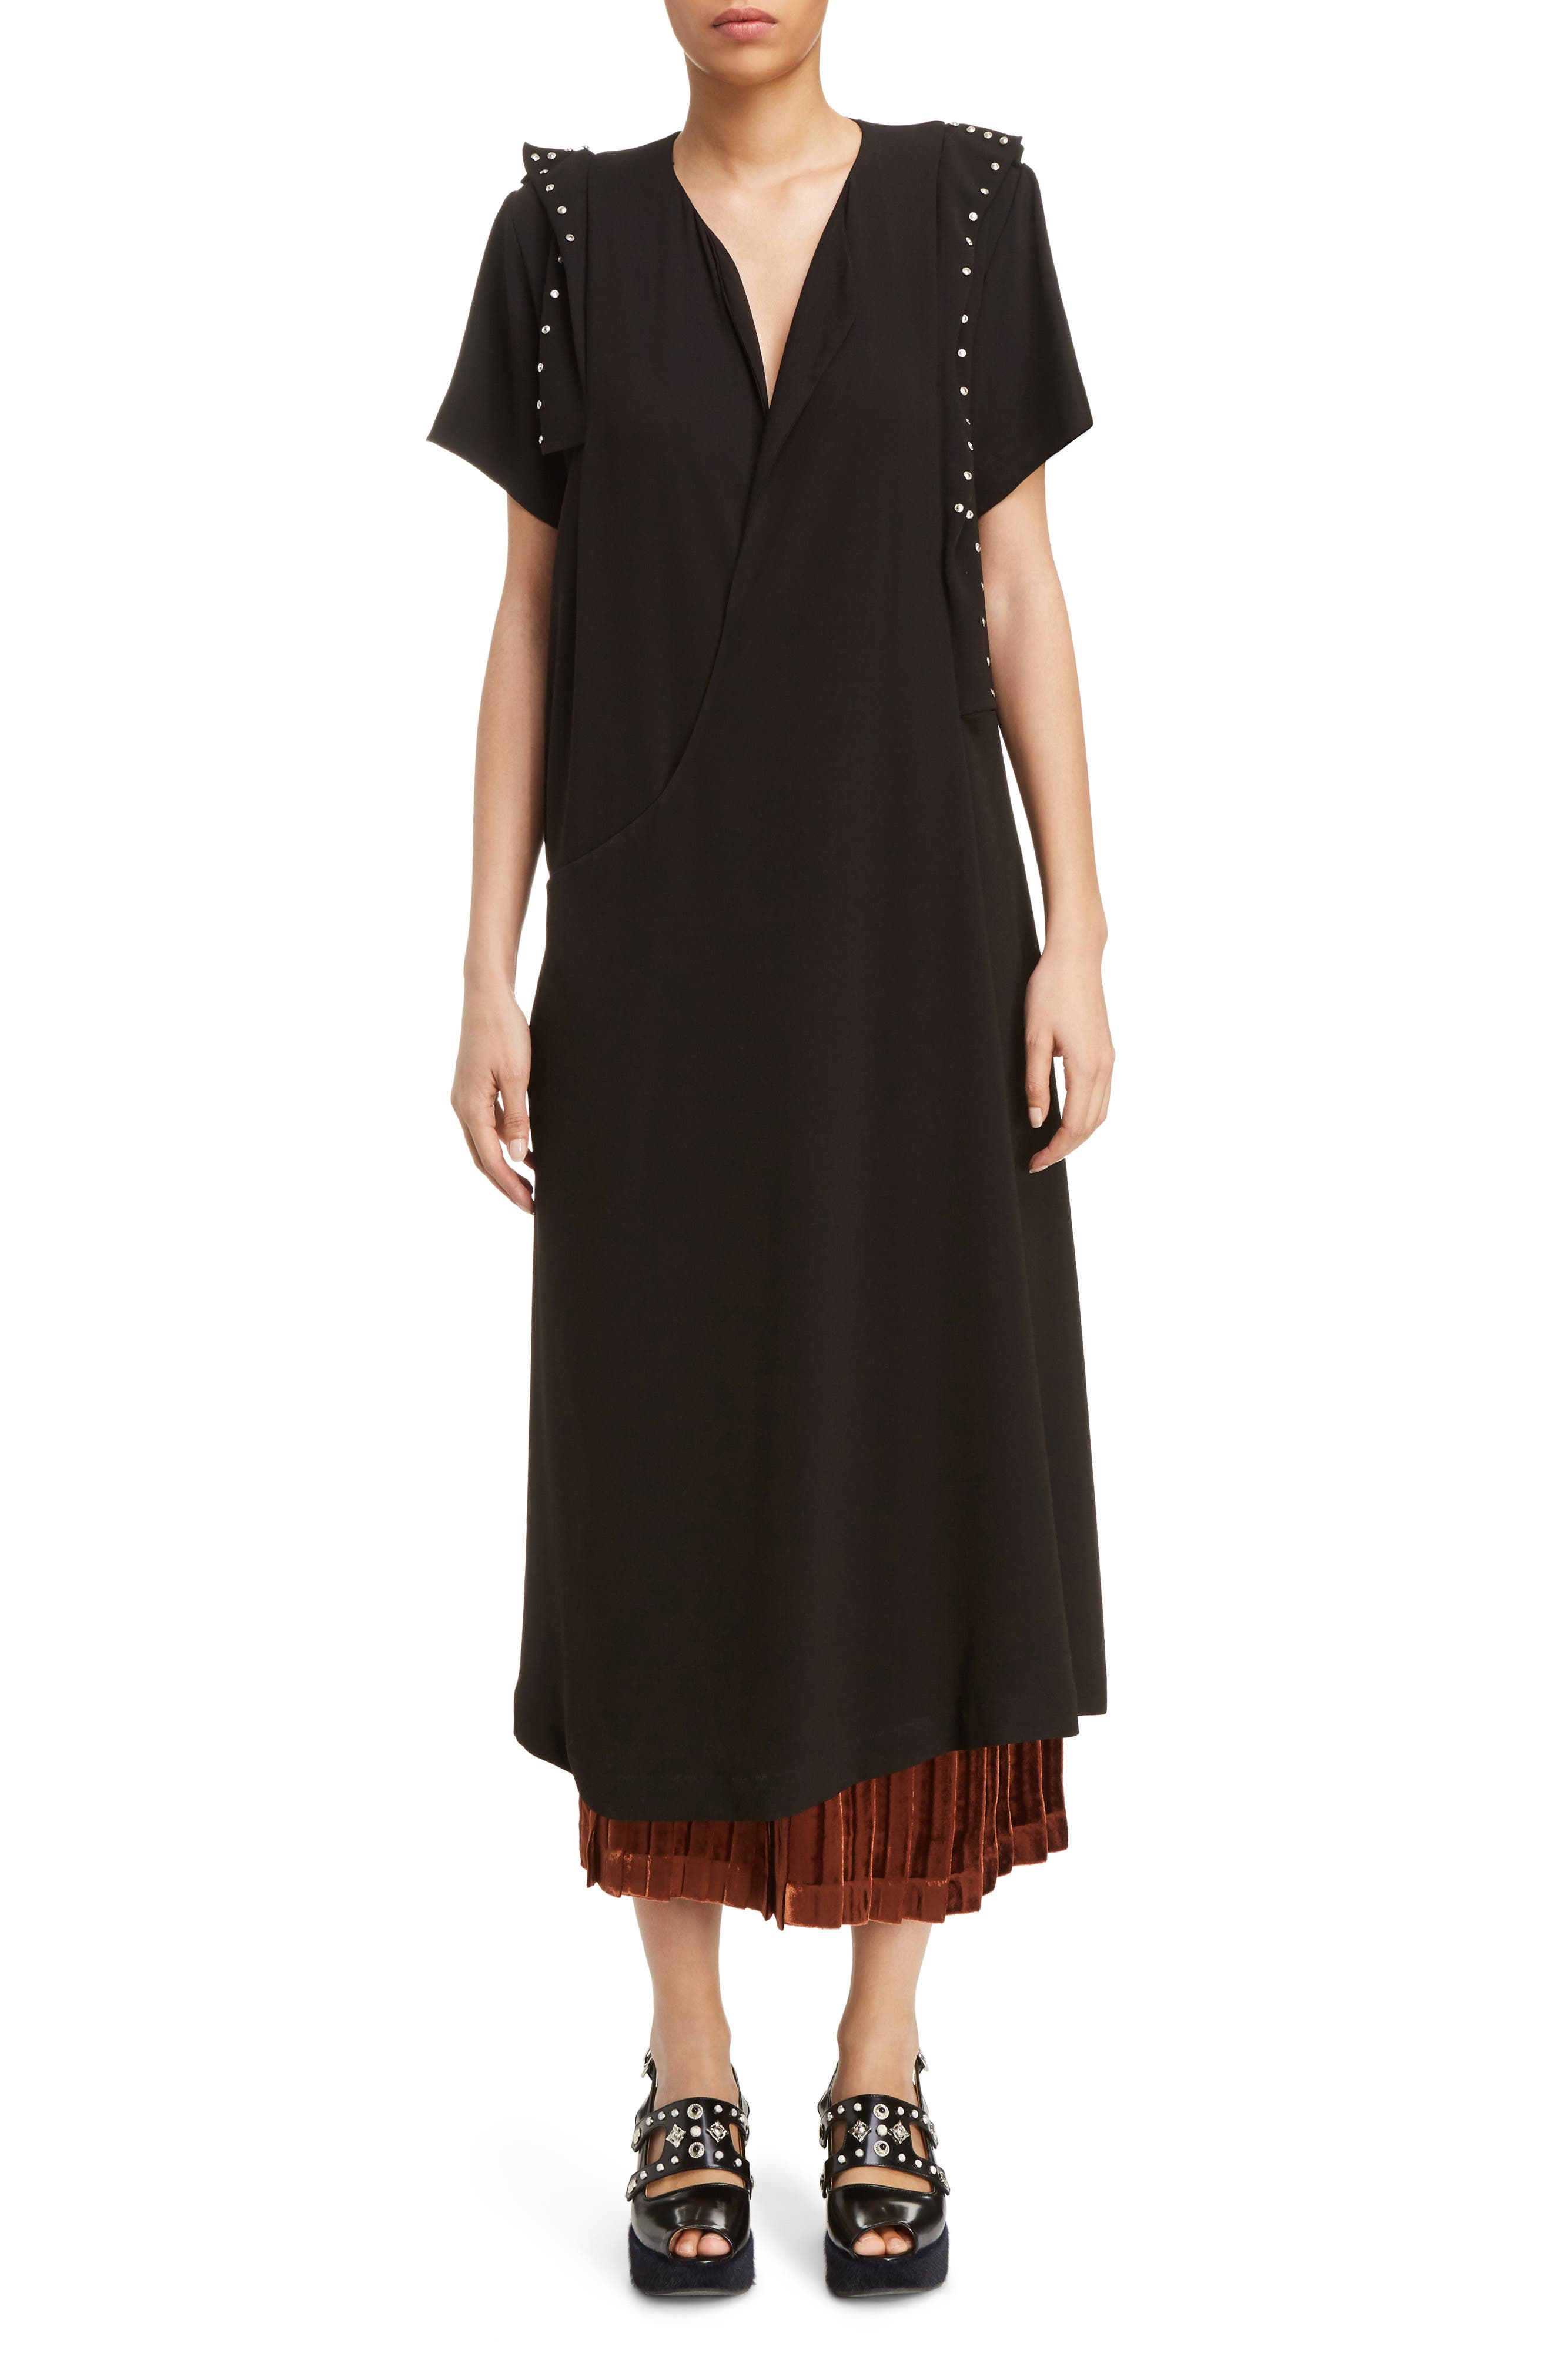 TOGA Georgette Faux Wrap Dress